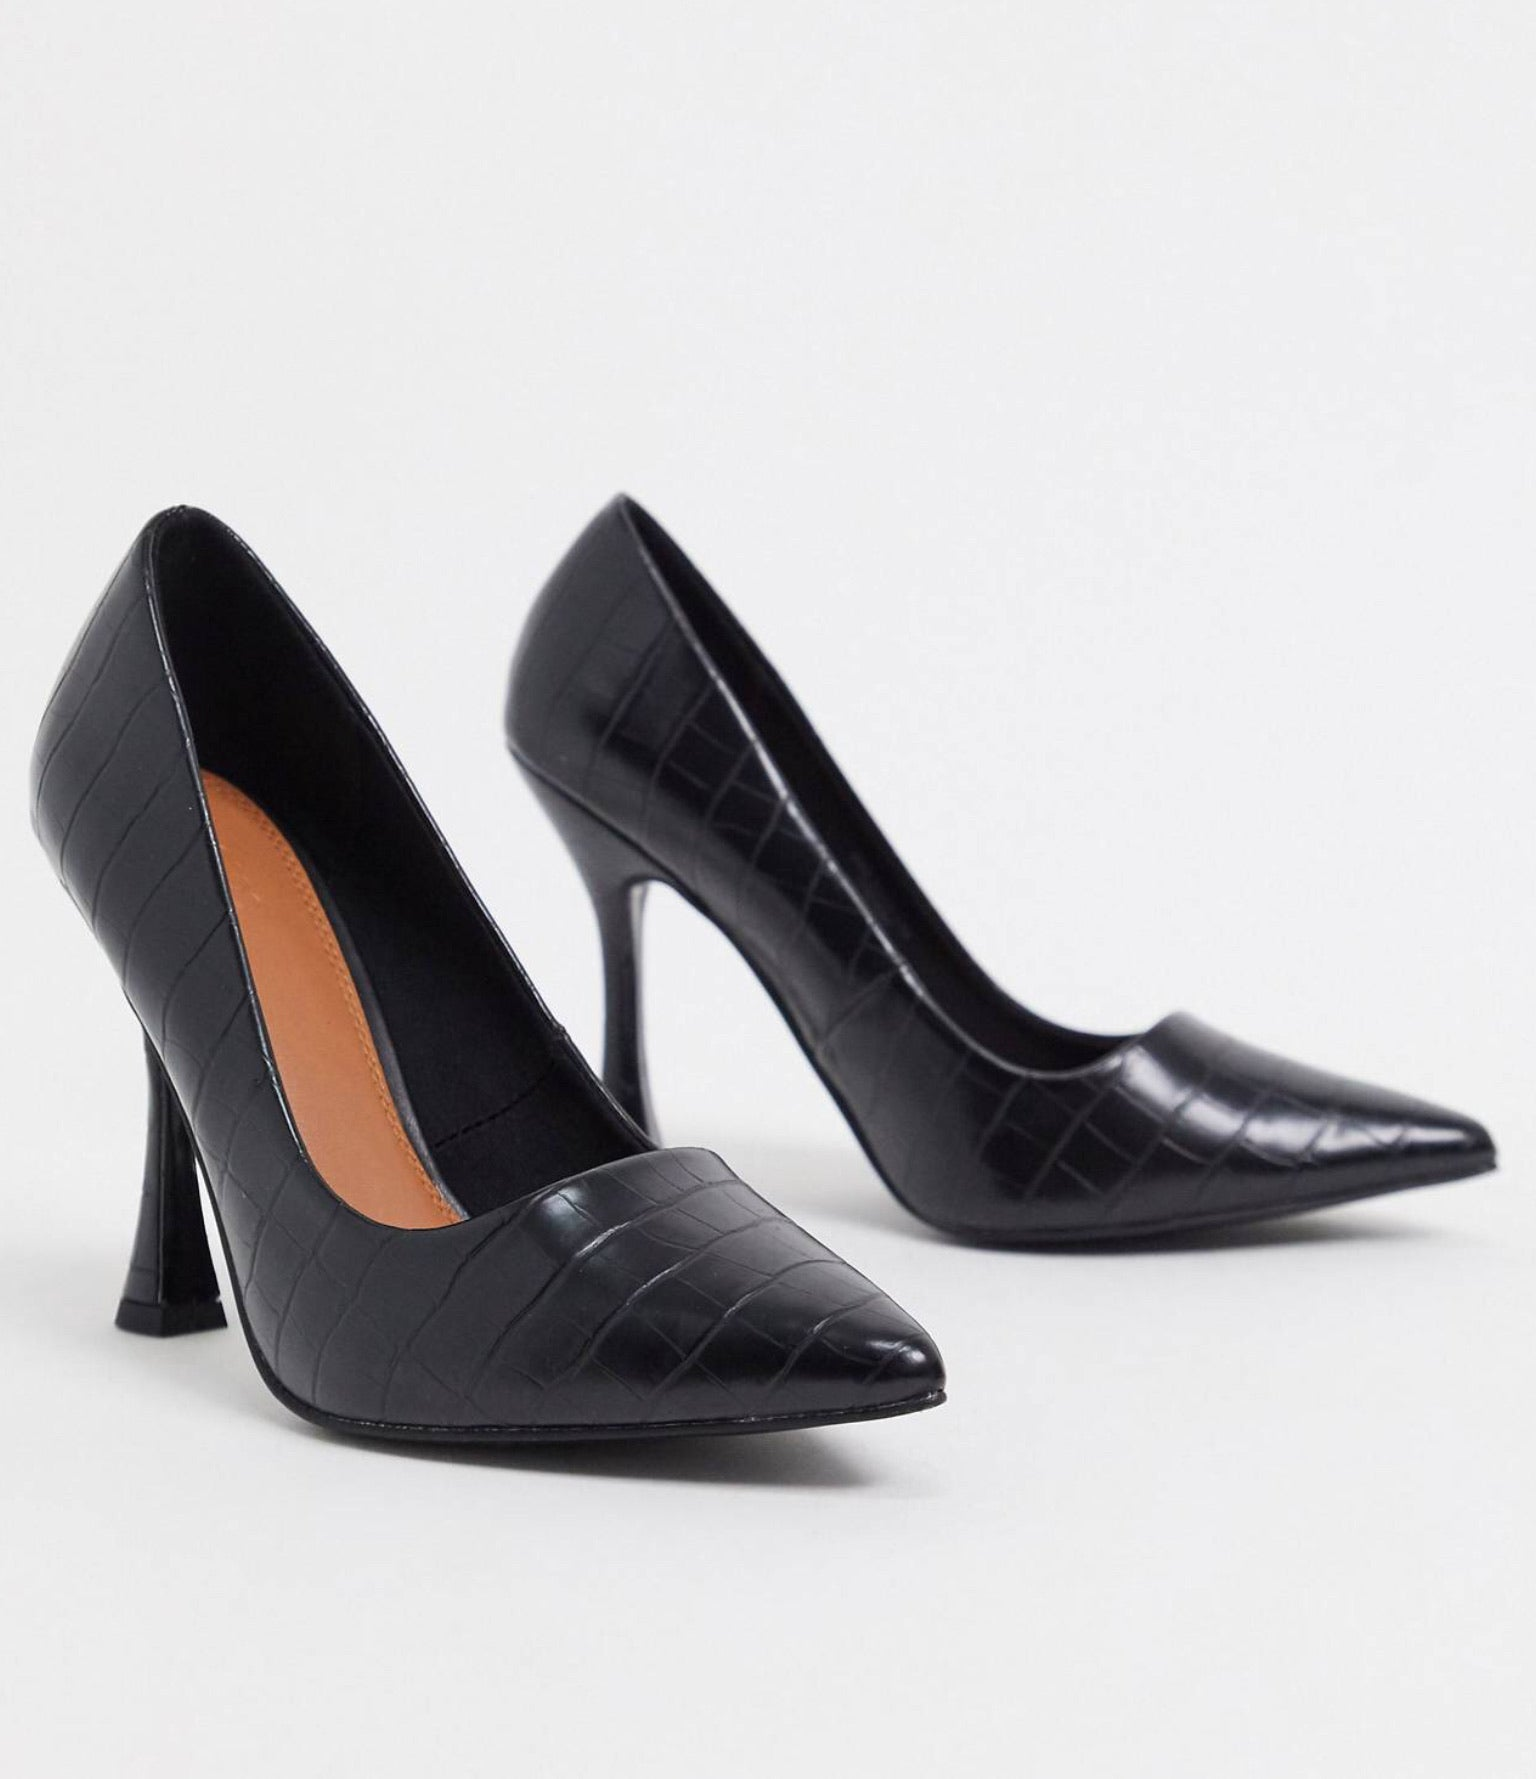 ASOS DESIGN PIPPA POINTED COURT SHOES